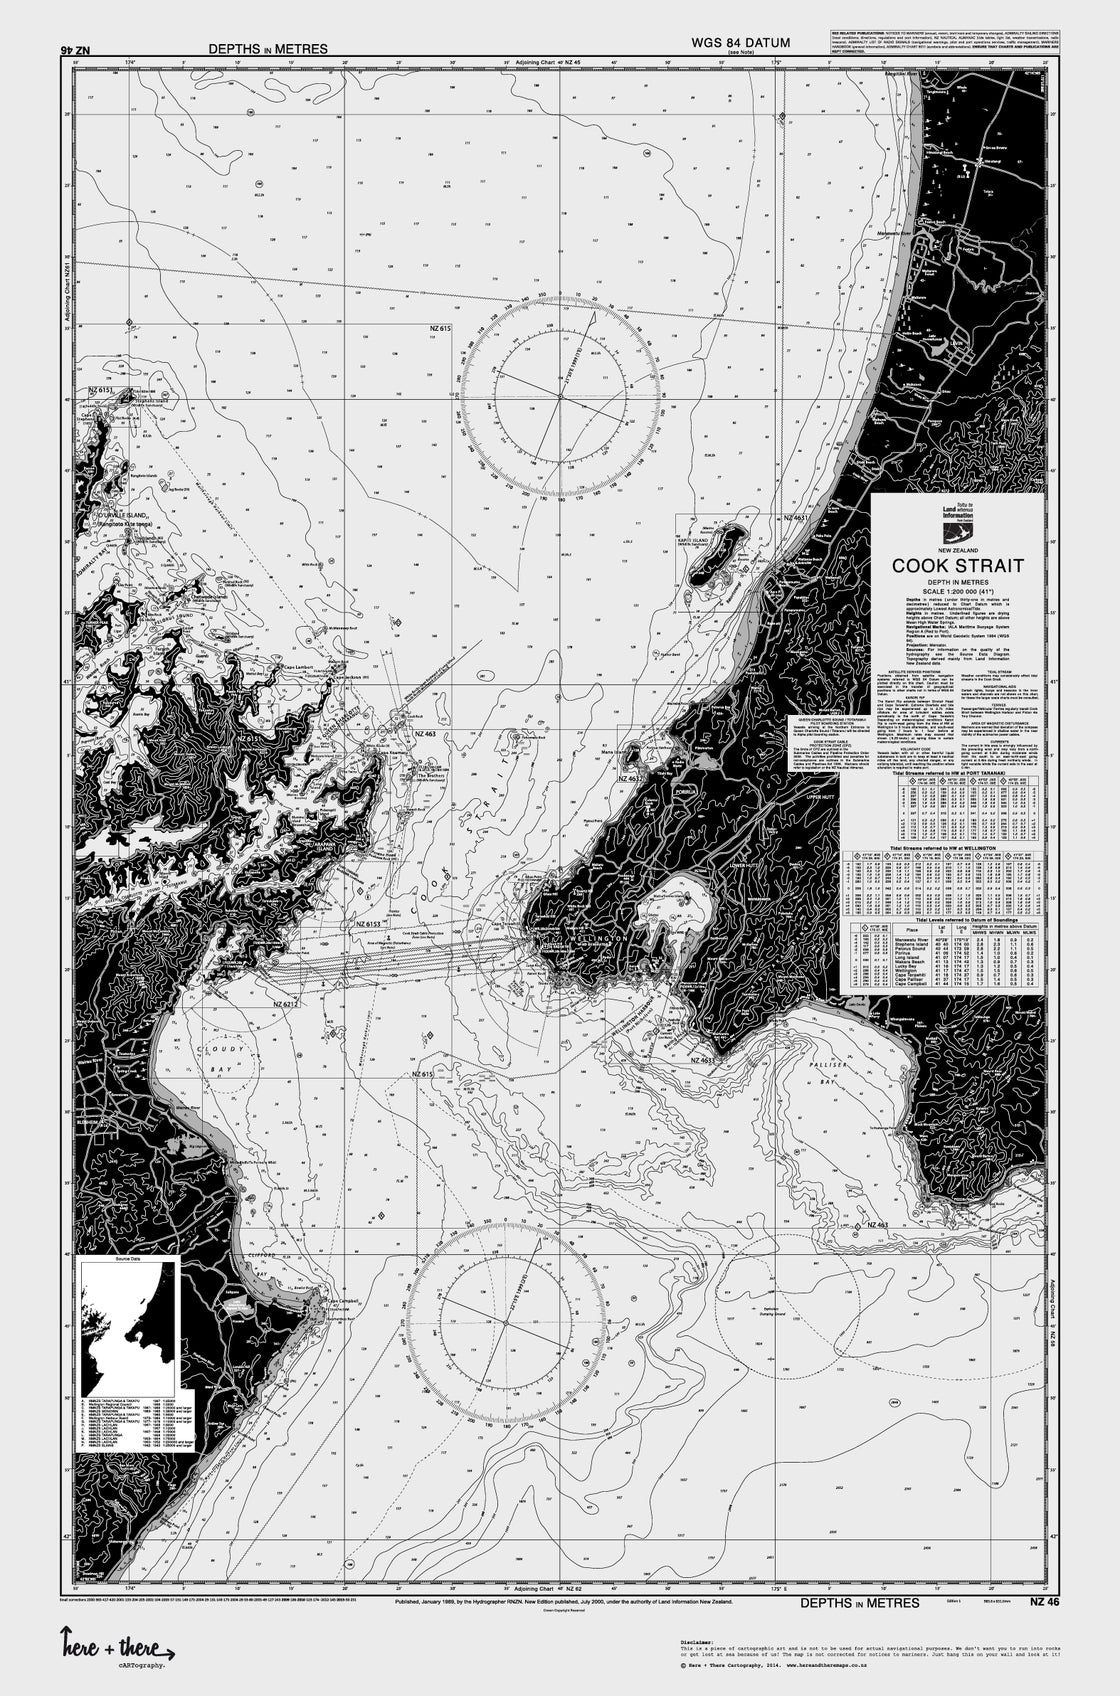 Image of Cook Strait - Silver Fox